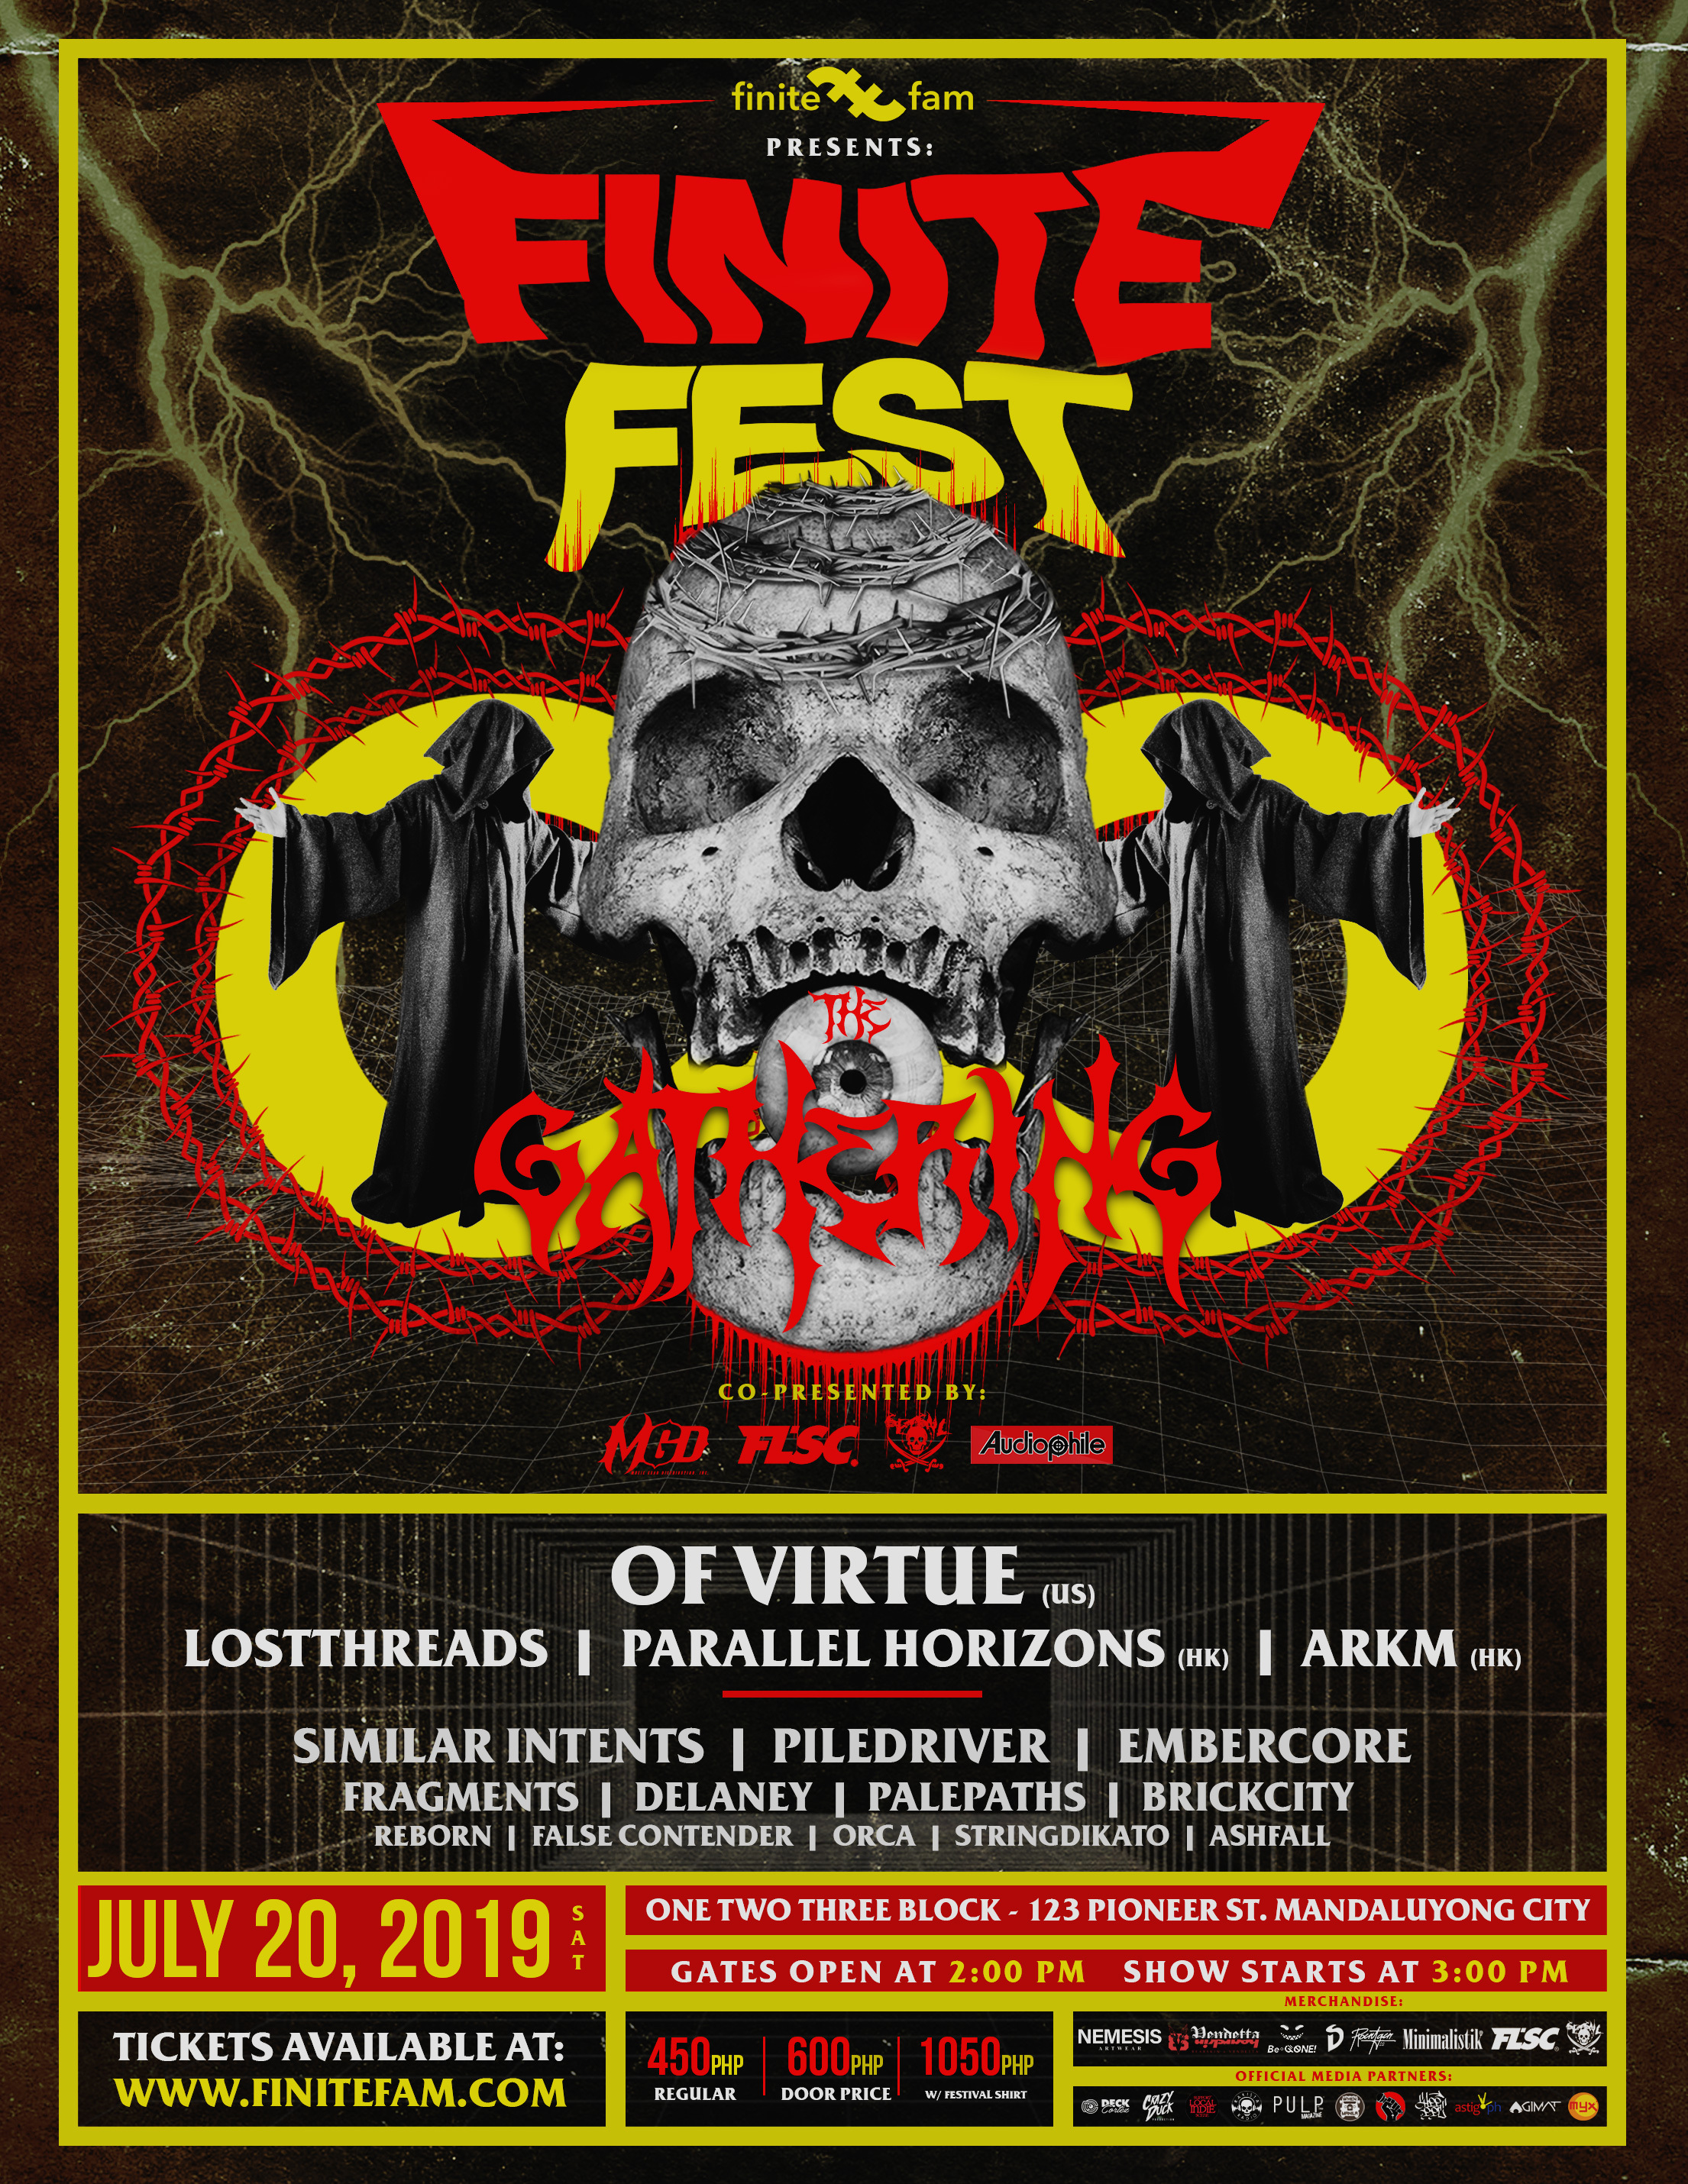 GATHER UP AS LOCAL AND INTERNATIONAL ACTS ASSEMBLE FOR FINITE FEST 2019